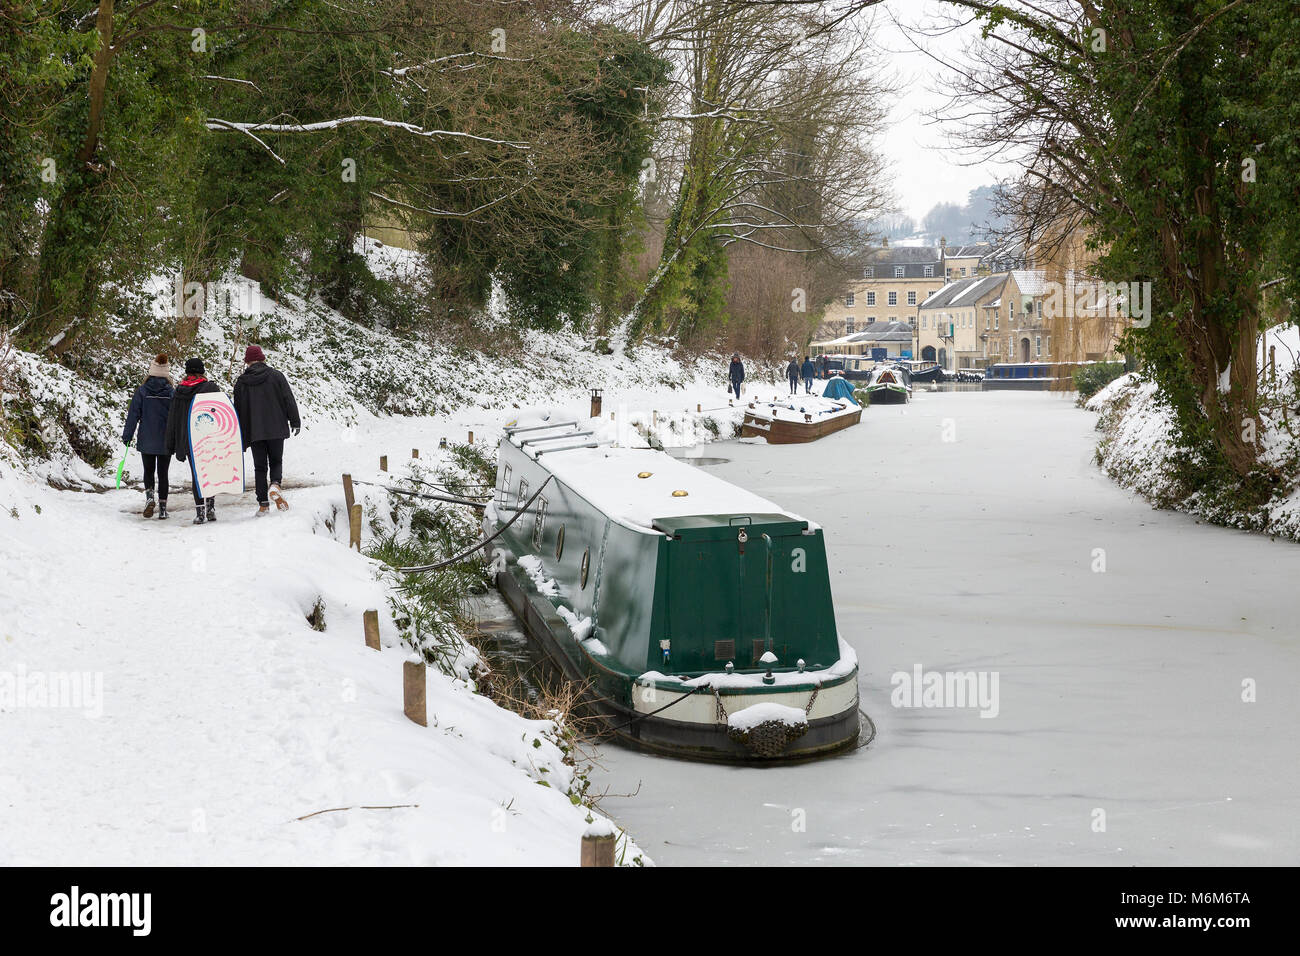 BATH, UK - MARCH 2, 2018 : People walking along the snow covered towpath on the frozen Kennet and Avon Canal near - Stock Image